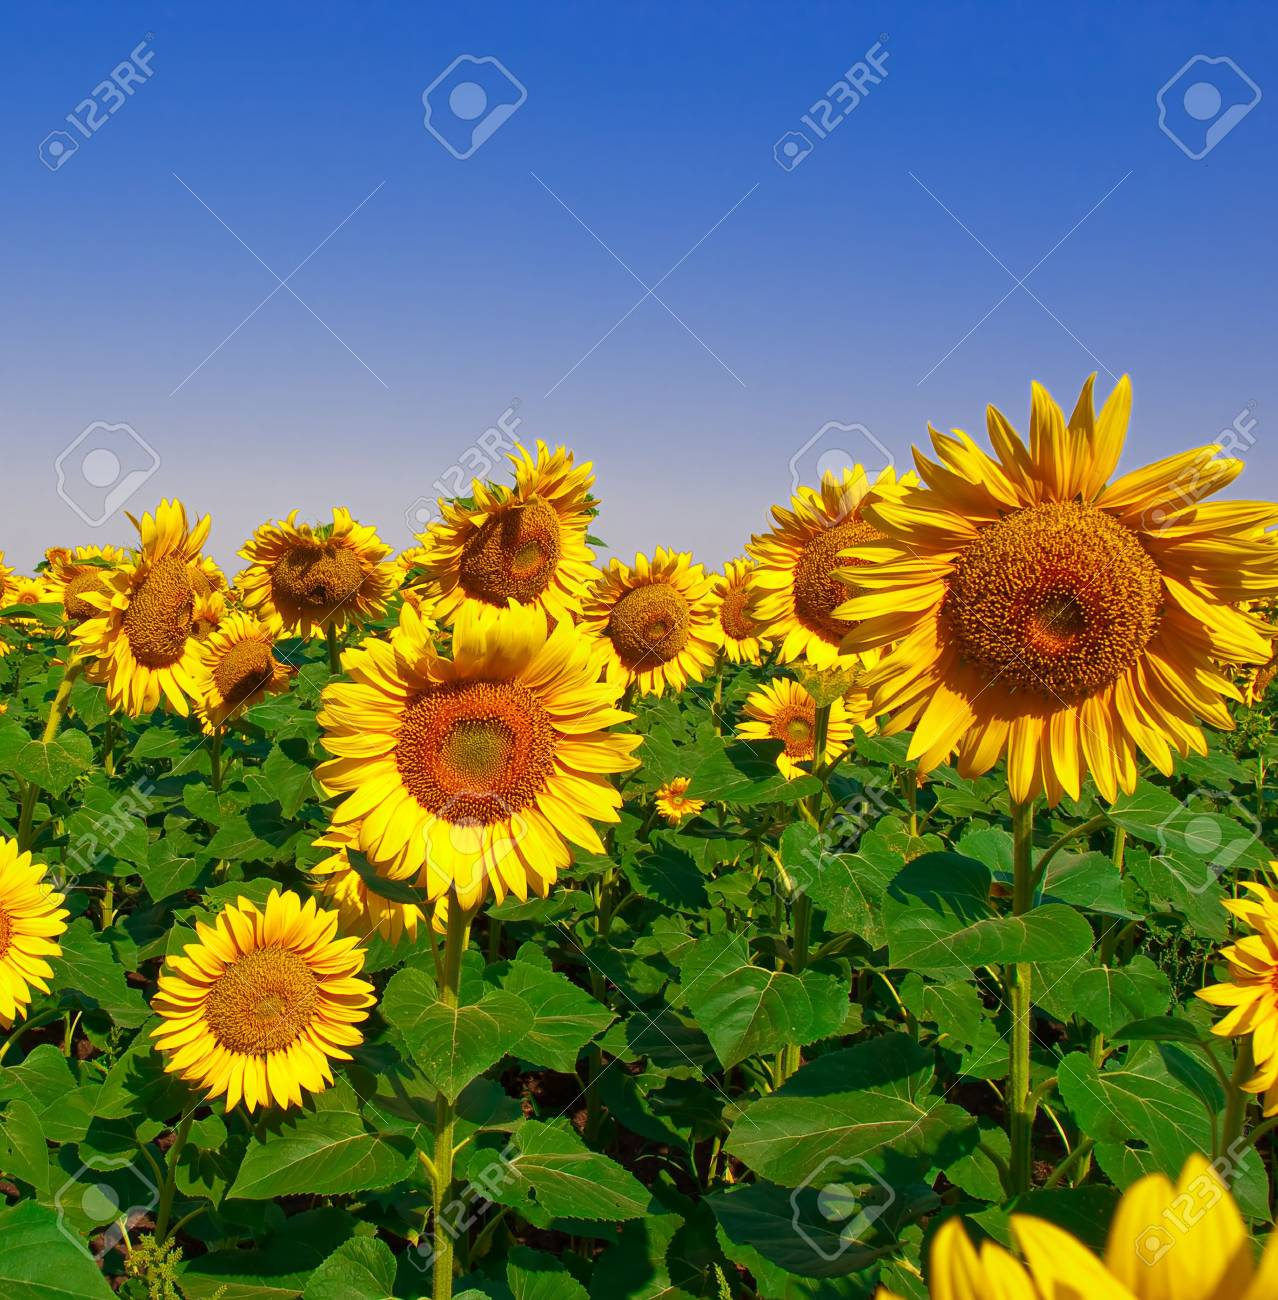 Field of seeds of sunflower against the blue sky Stock Photo - 5377011